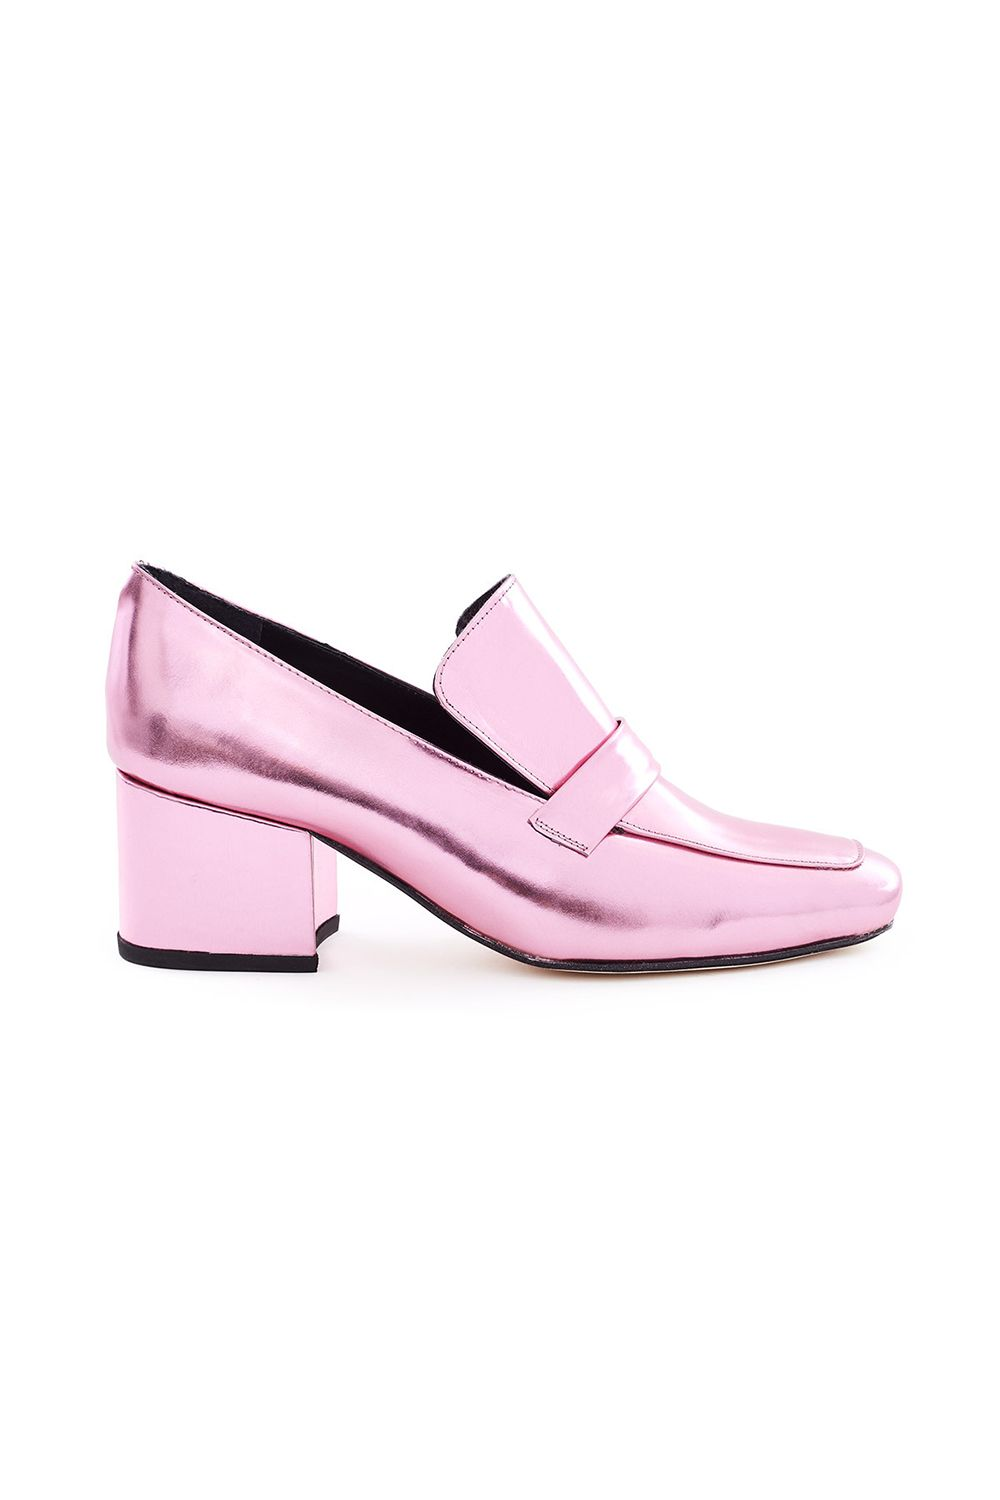 "<p>Admit it: You were going to buy these pink foil loafers anyway.&nbsp&#x3B;</p><p>$485, <a href=""https://www.openingceremony.com/womens/dorateymur/heeled-loafers-ST97471.html"" target=""_blank"" data-tracking-id=""recirc-text-link"">openingceremony.com</a>.</p>"